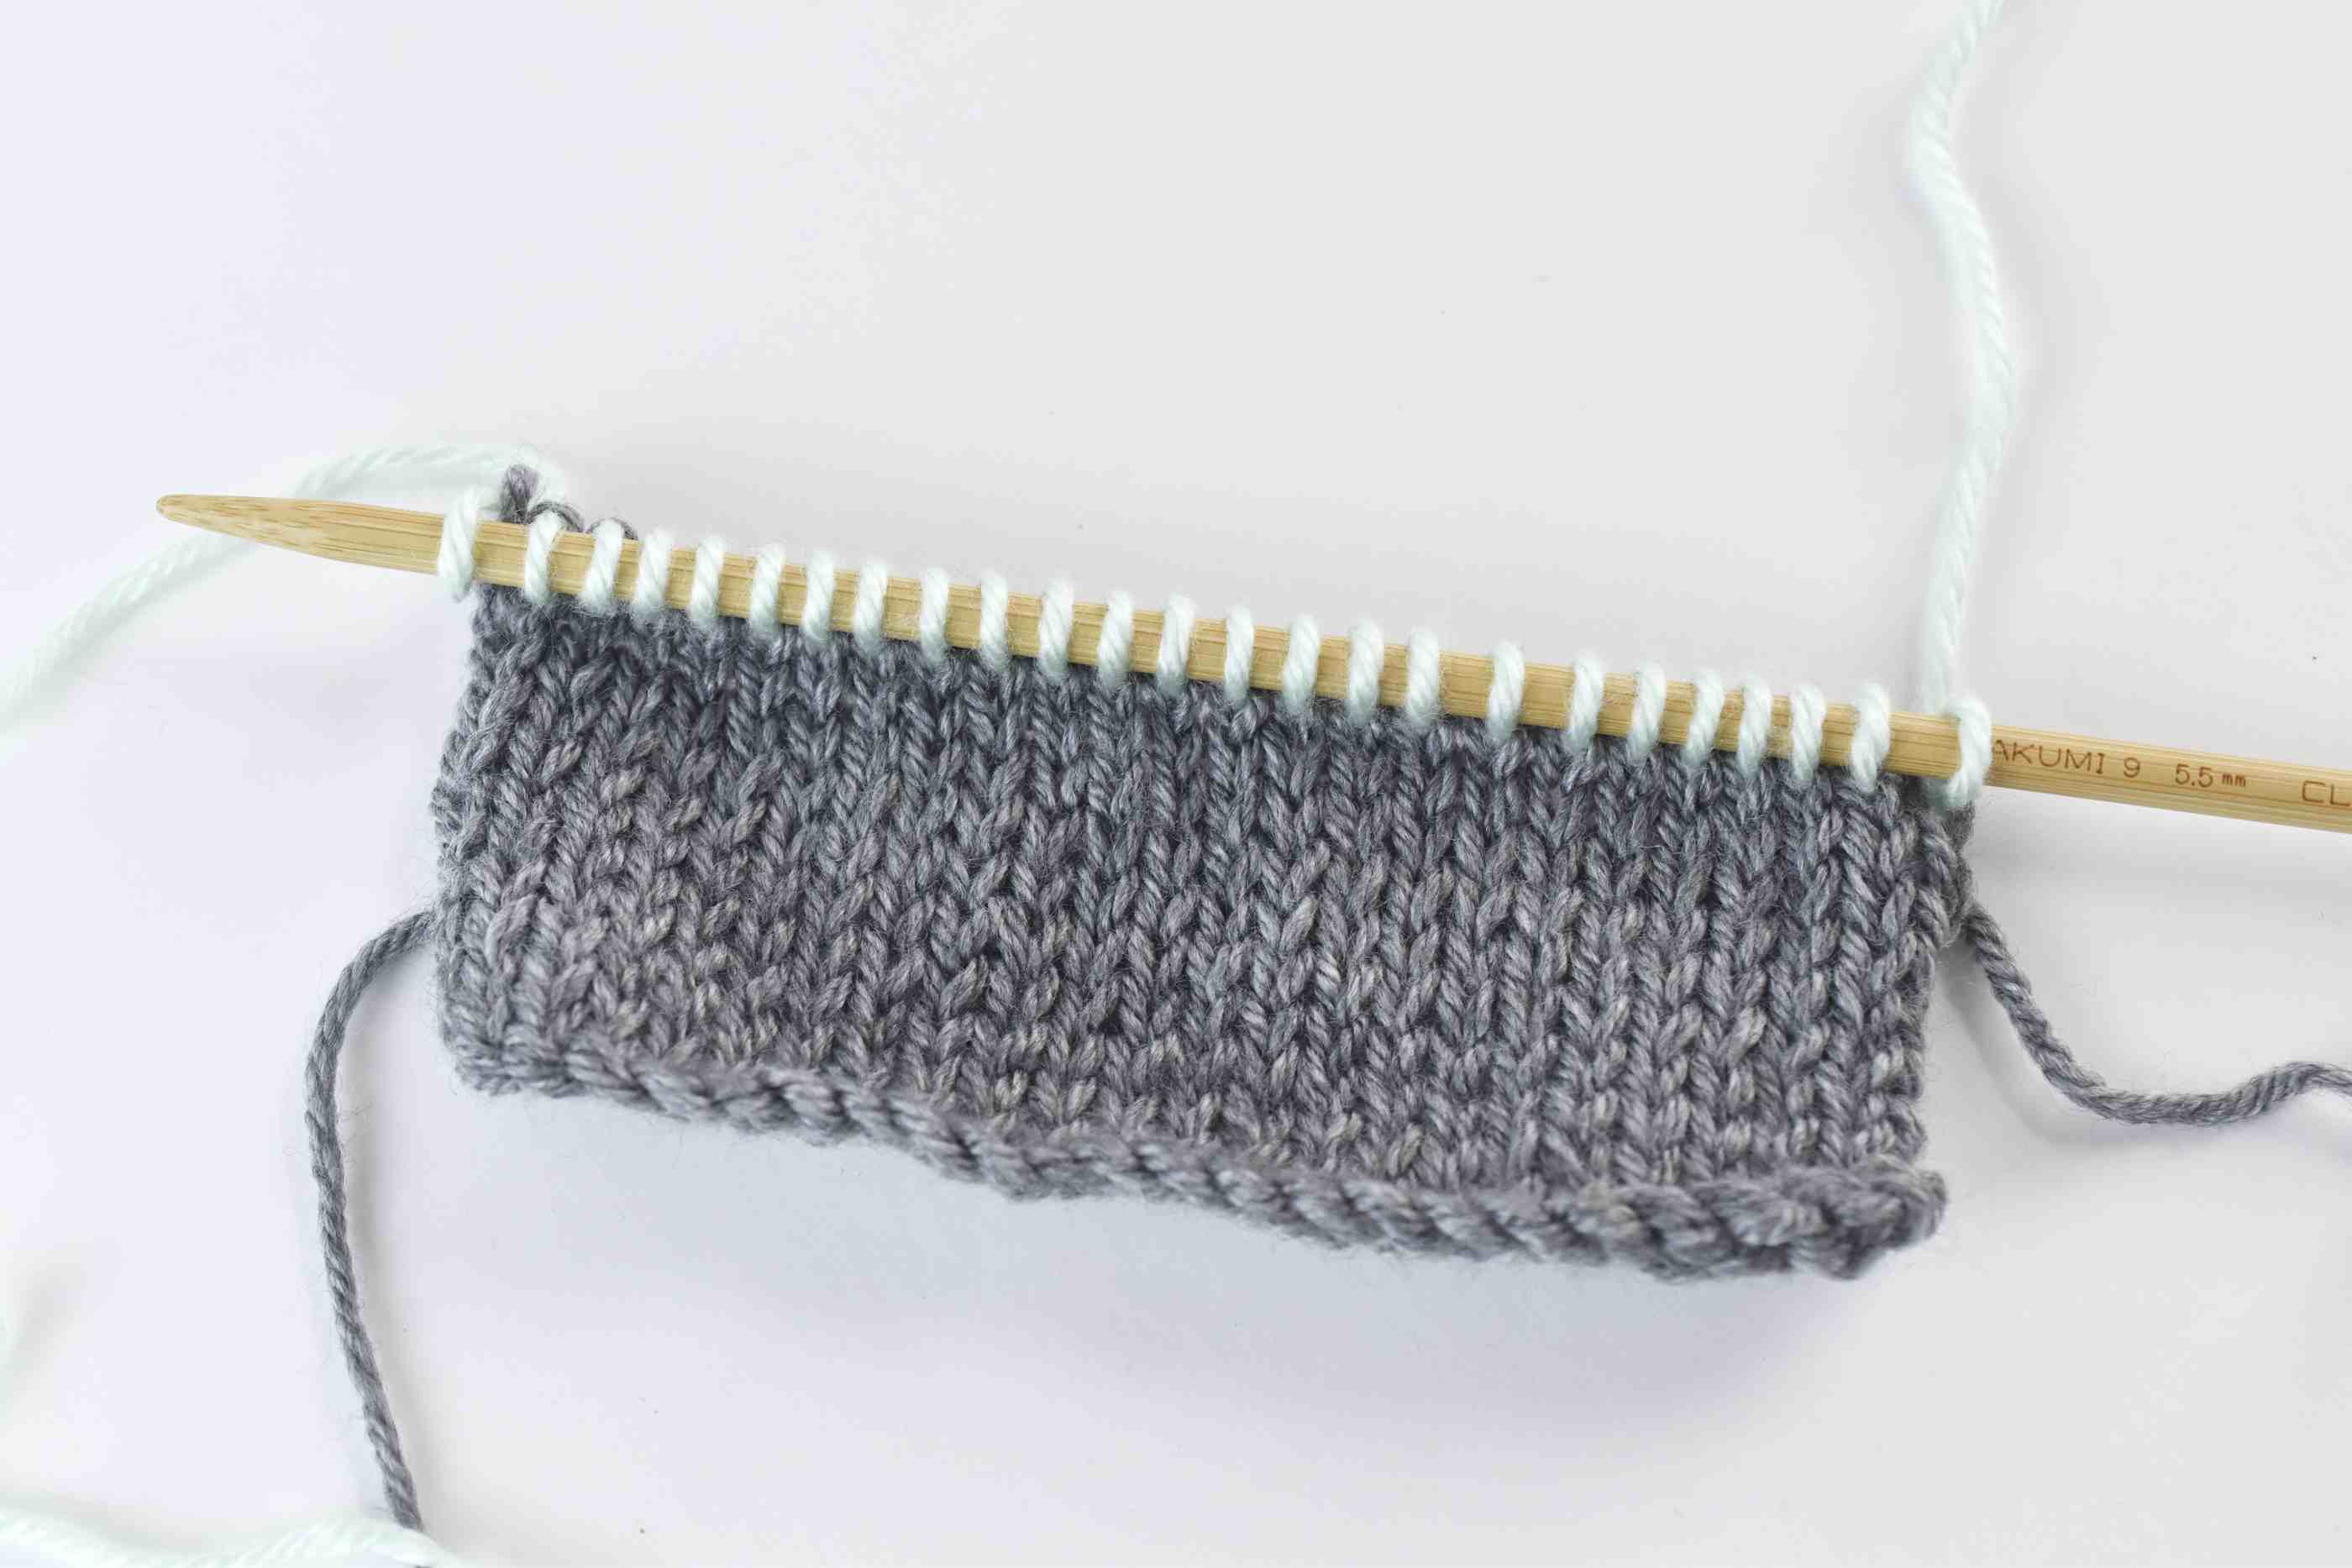 Knit the Row With the New Color